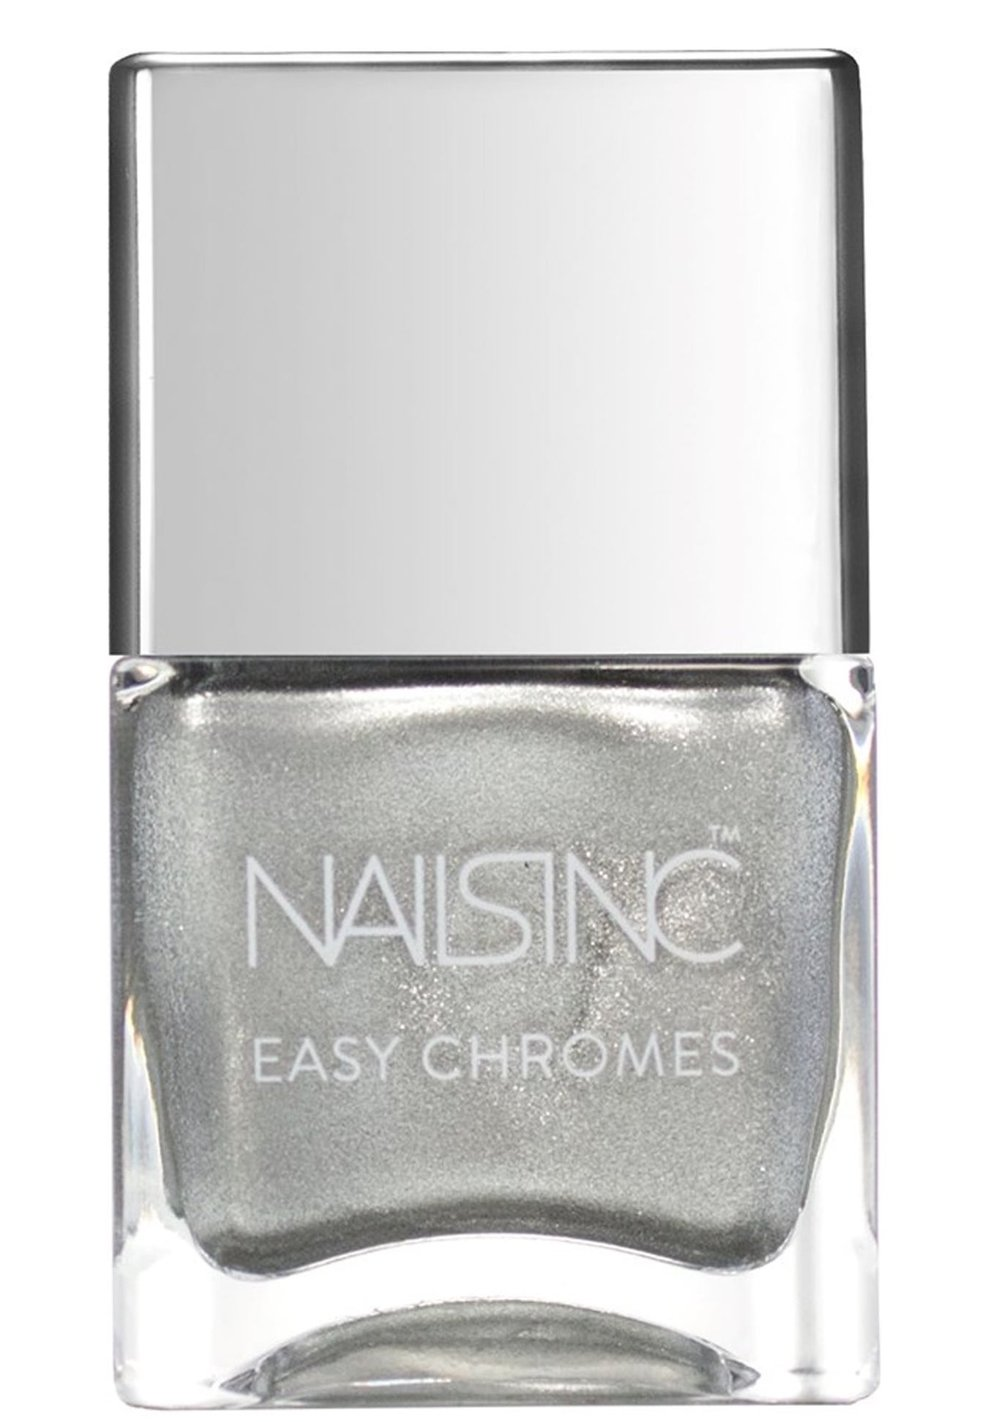 nails-inc-easy-chromes-nail-polish-steely-stare-9718-14ml-p22463-91337_zoom.jpg